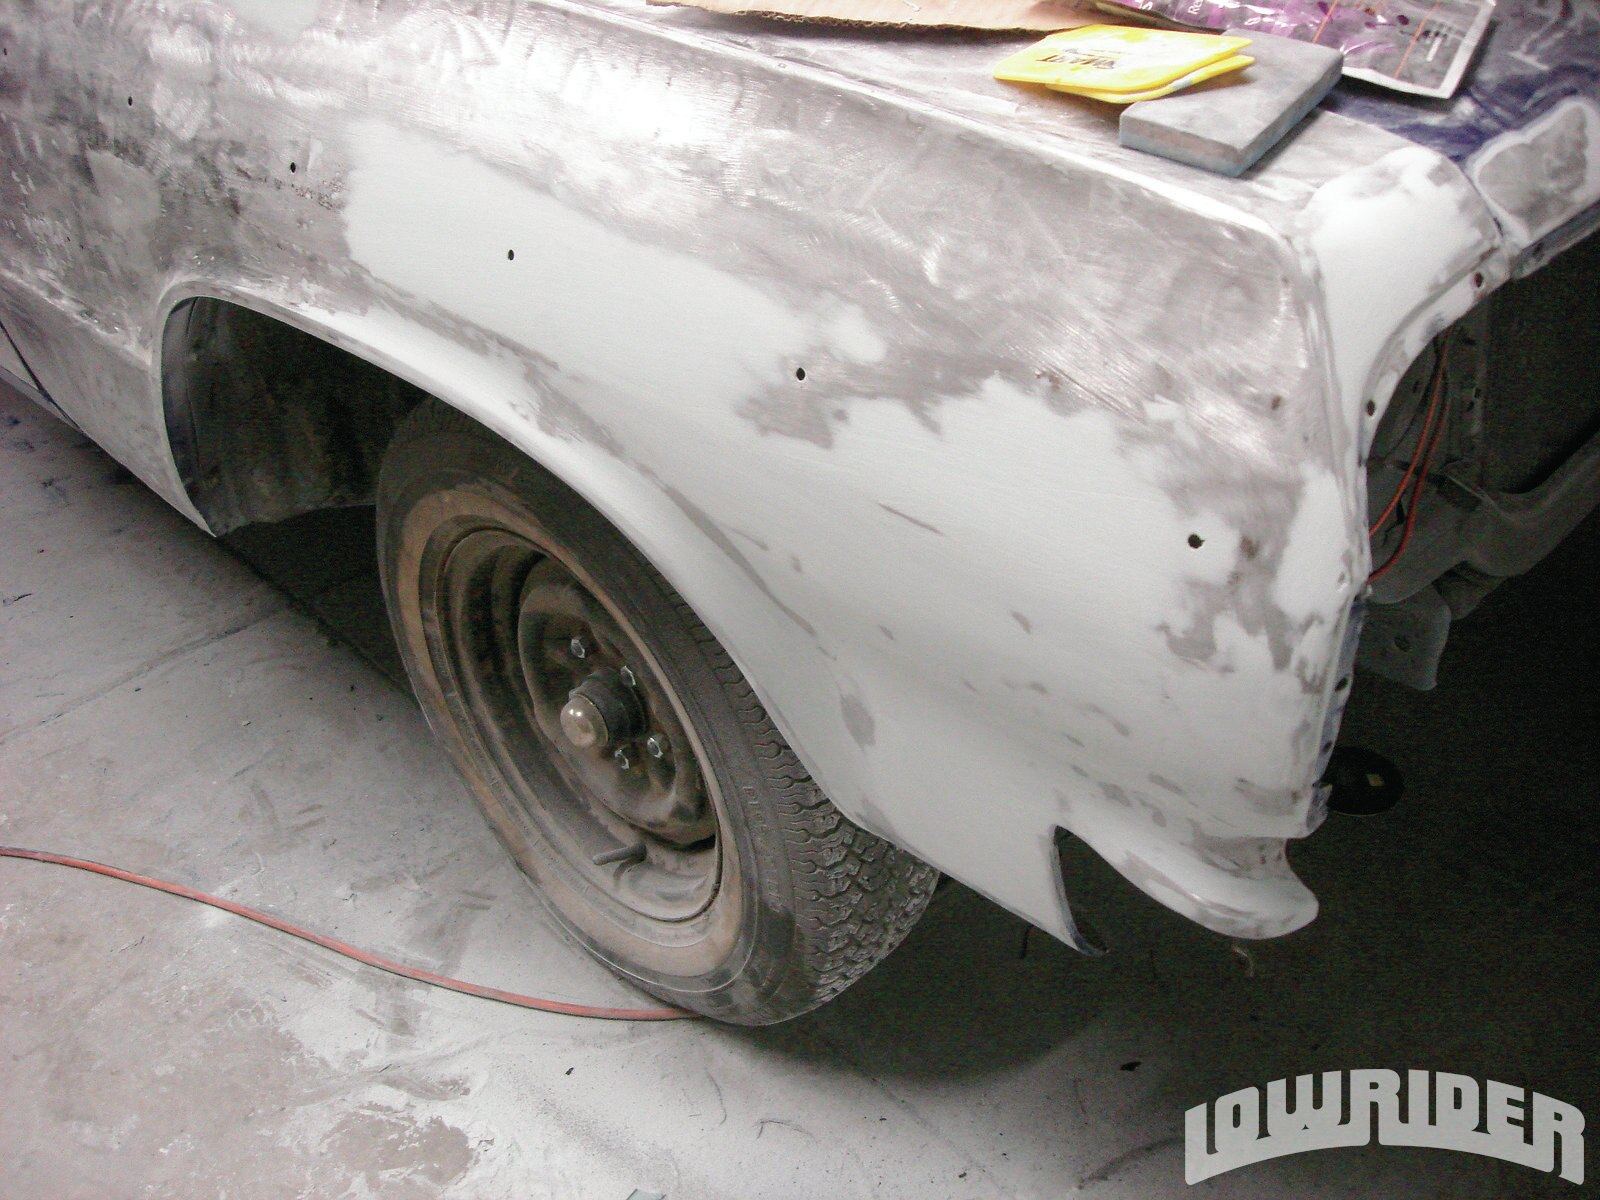 10 Once the bodywork was finished, it was sealed with primer for its final block.